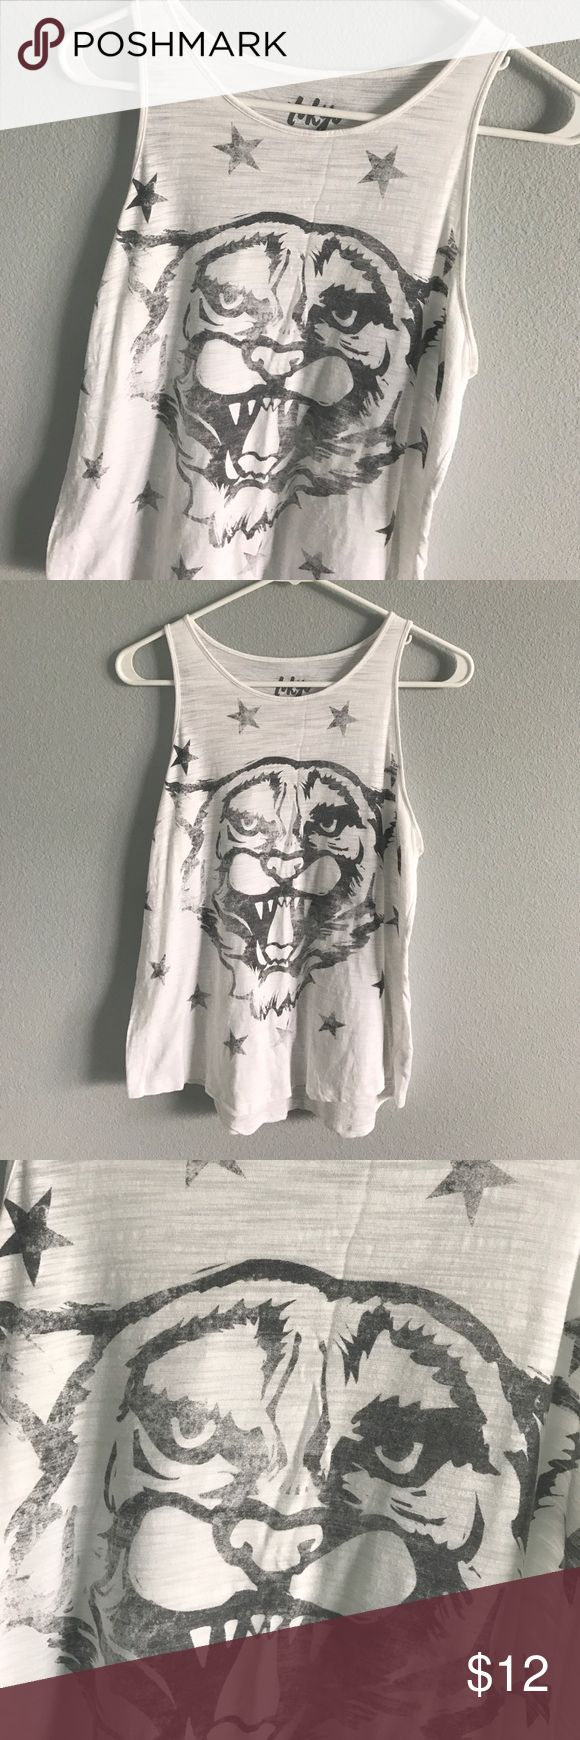 Graphic tiger tank Tokyo Darling Aeropostale Cute light weight graphic tank with a faded tiger and stars on it. Slight high low hem, hits around hips. Fabric is slightly see through. Small amount of pilling near armpits but no stains or holes. Tokyo Darling for Aeropostale. Aeropostale Tops Tank Tops